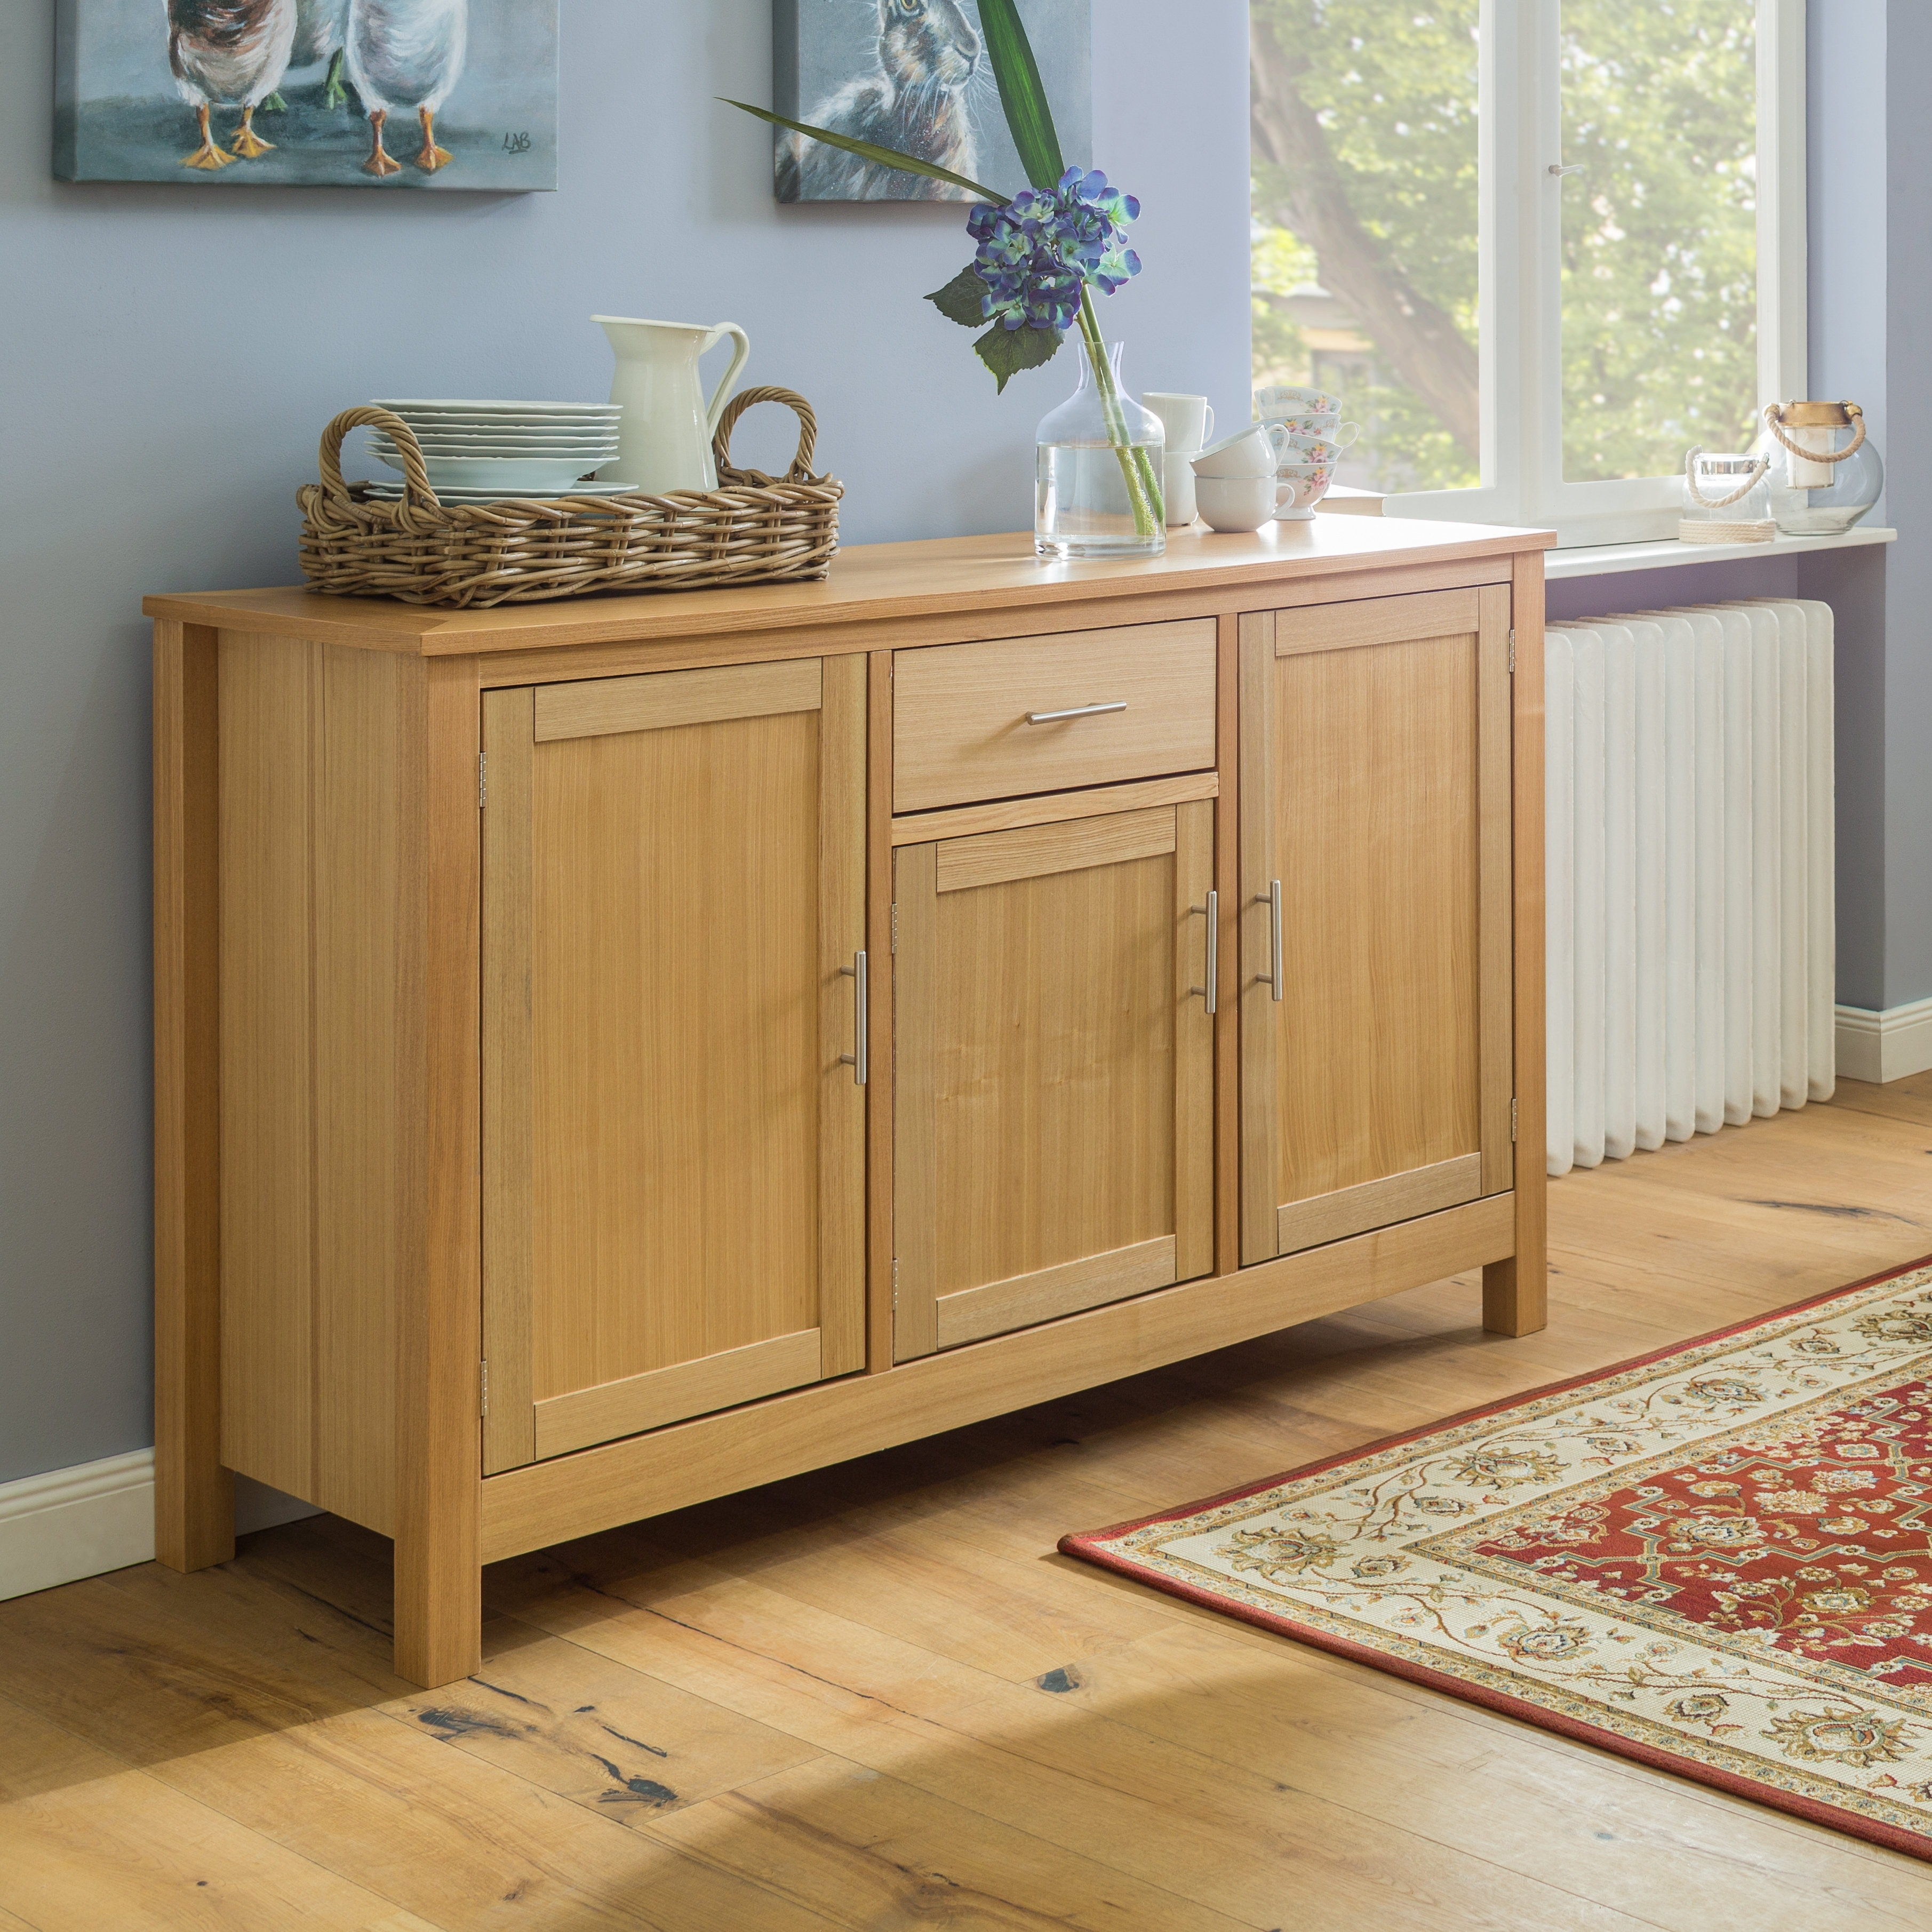 All Home Willowdale Sideboard | Wayfair.co.uk in Boyce Sideboards (Image 1 of 30)